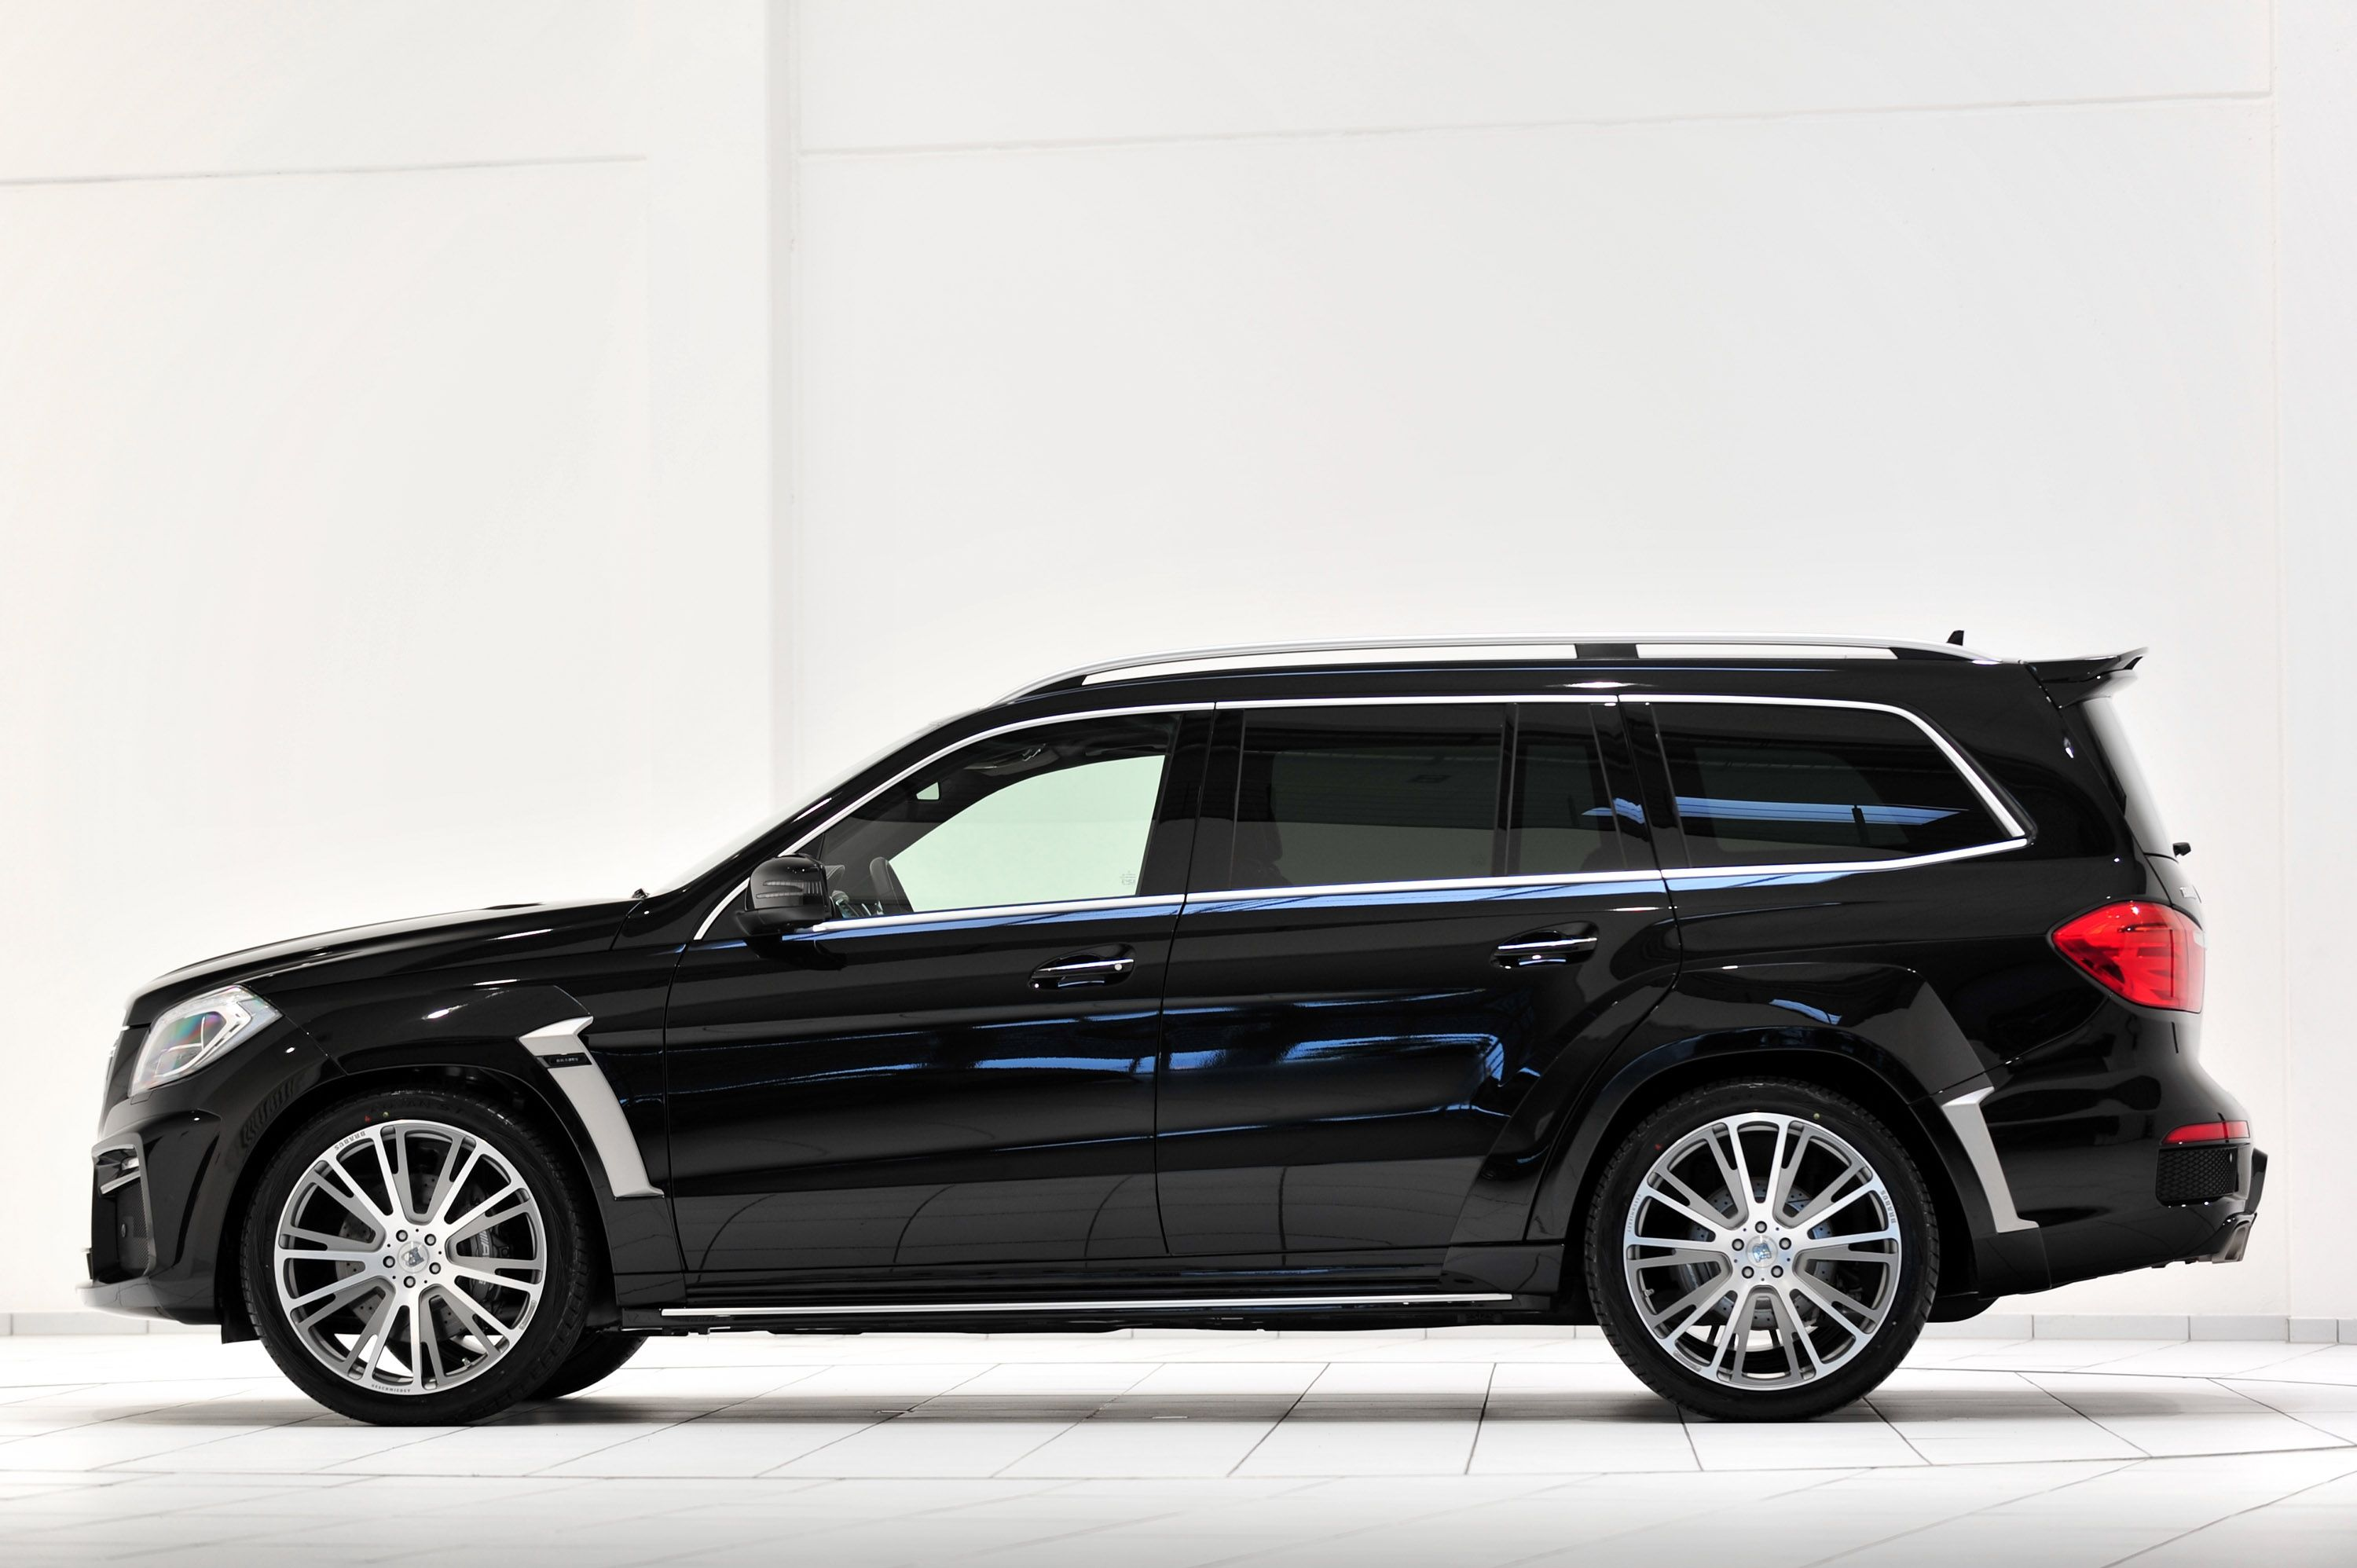 Gl 63 Amg The All New Mercedes Benz Gl 63 Amg Has Been Tuned By Specialist Mercedes Benz Gl Amg Car Benz